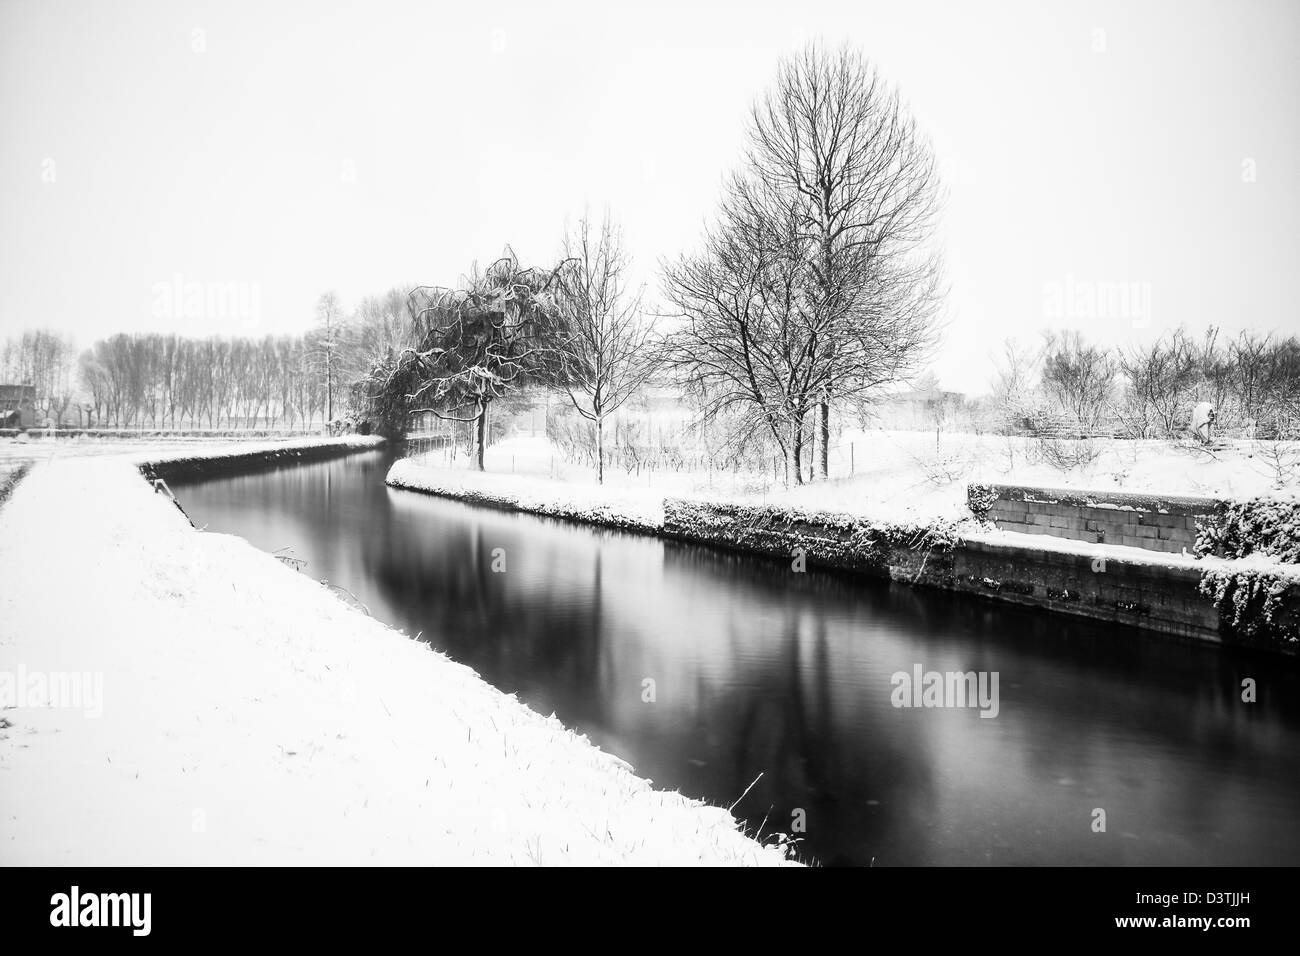 The snow on an Italian winter landscape - Stock Image